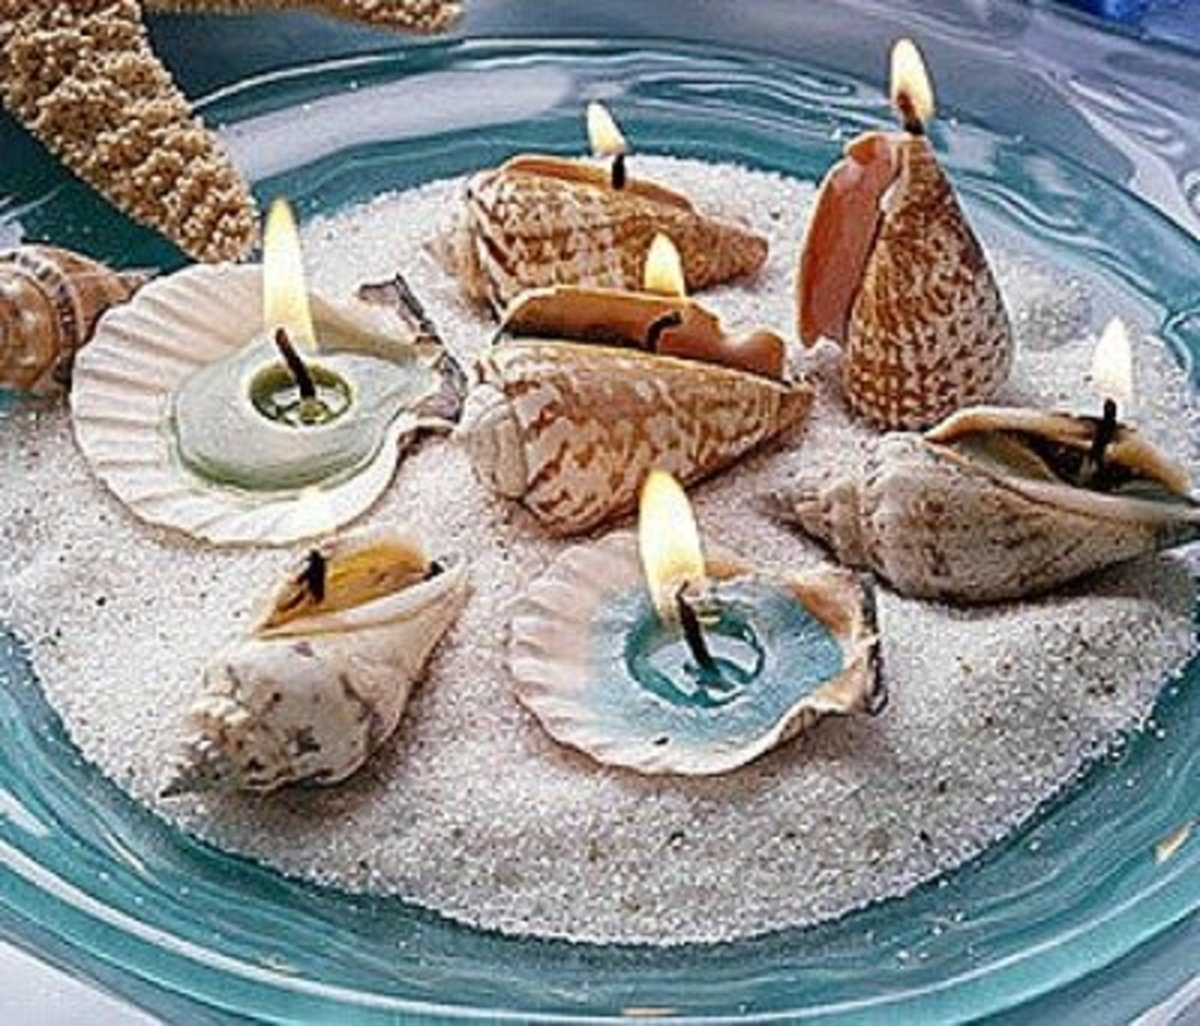 making-crafts-with-seashells